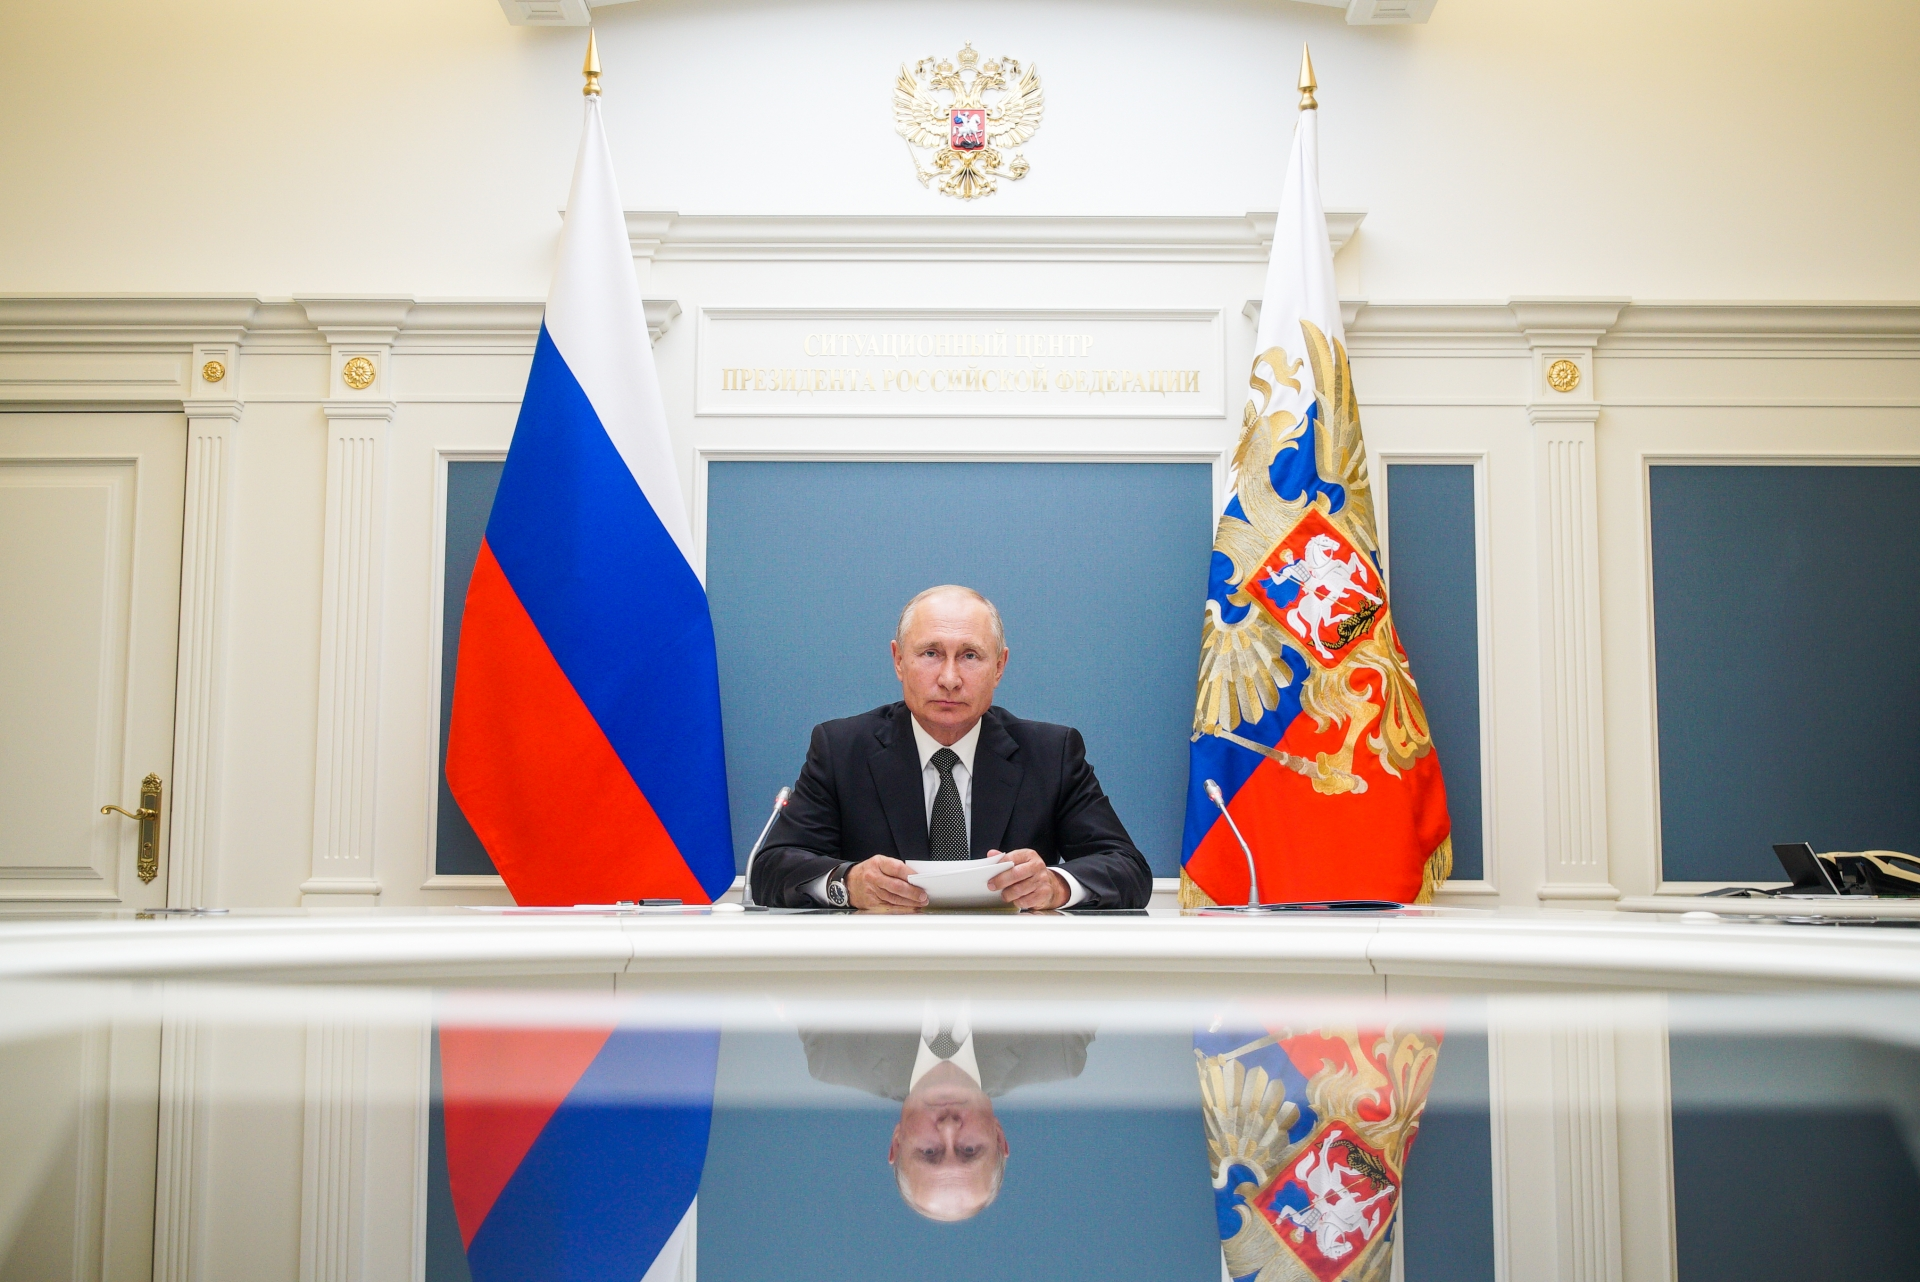 Vladimir Putin now able to extend his rule until 2036